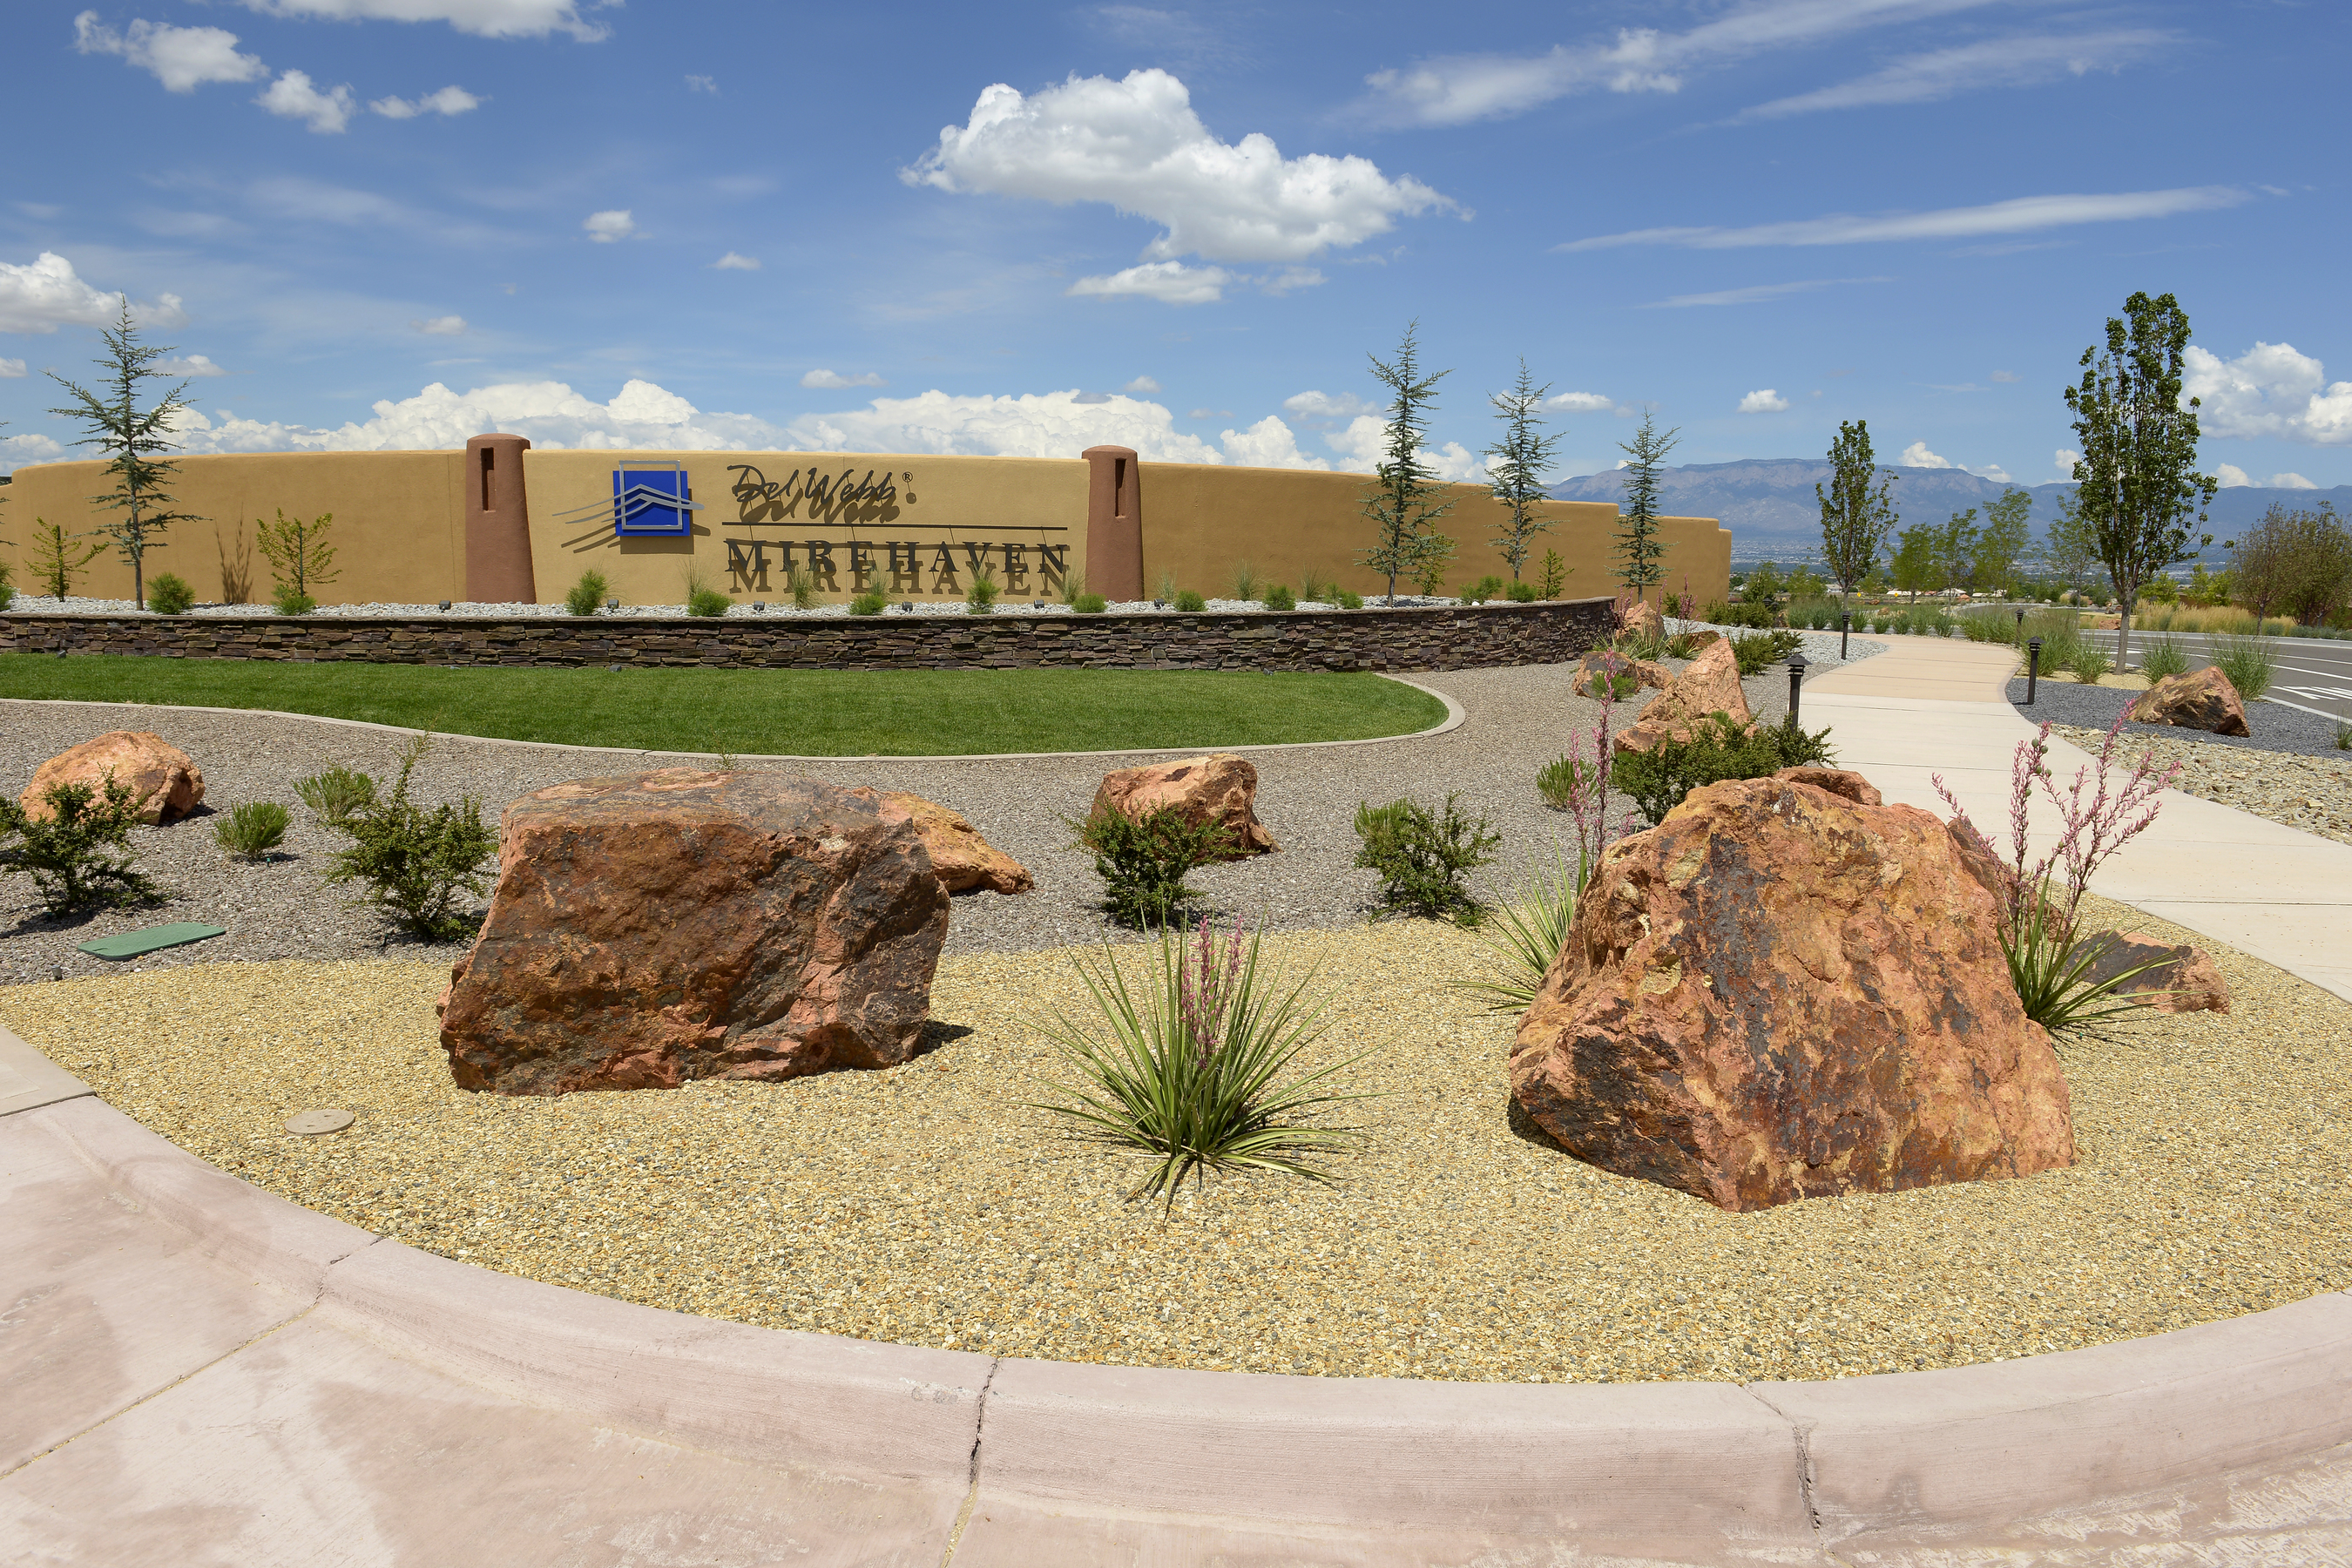 Mirehaven community entryway landscape in Albuquerque, NM